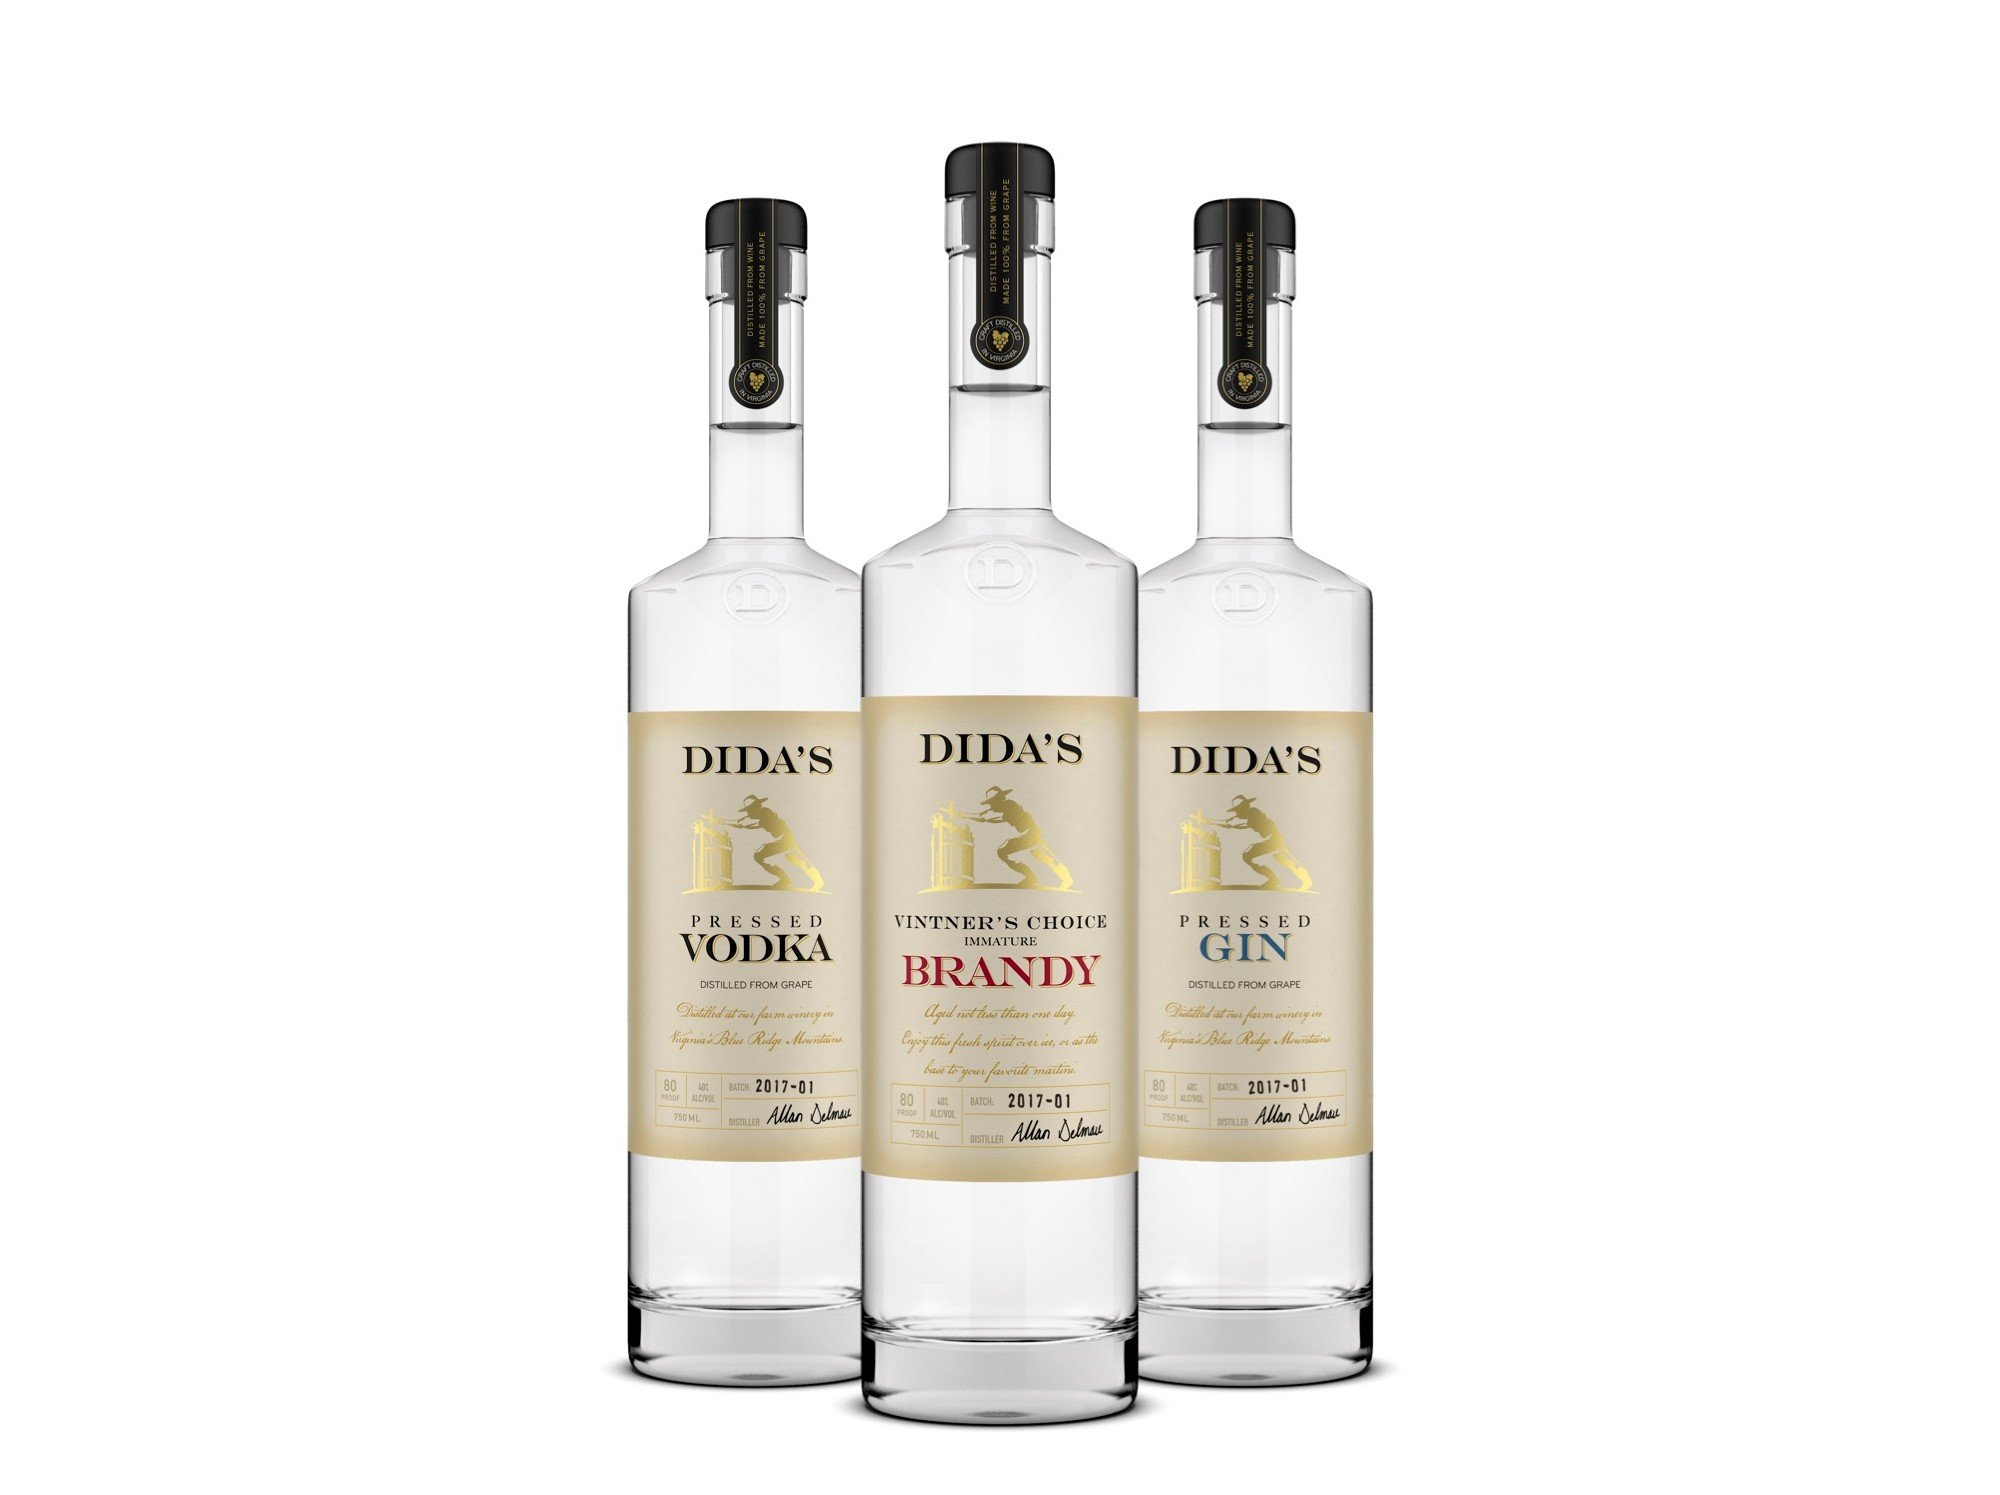 bottles of Dida's Vodka, Brandy, and Gin